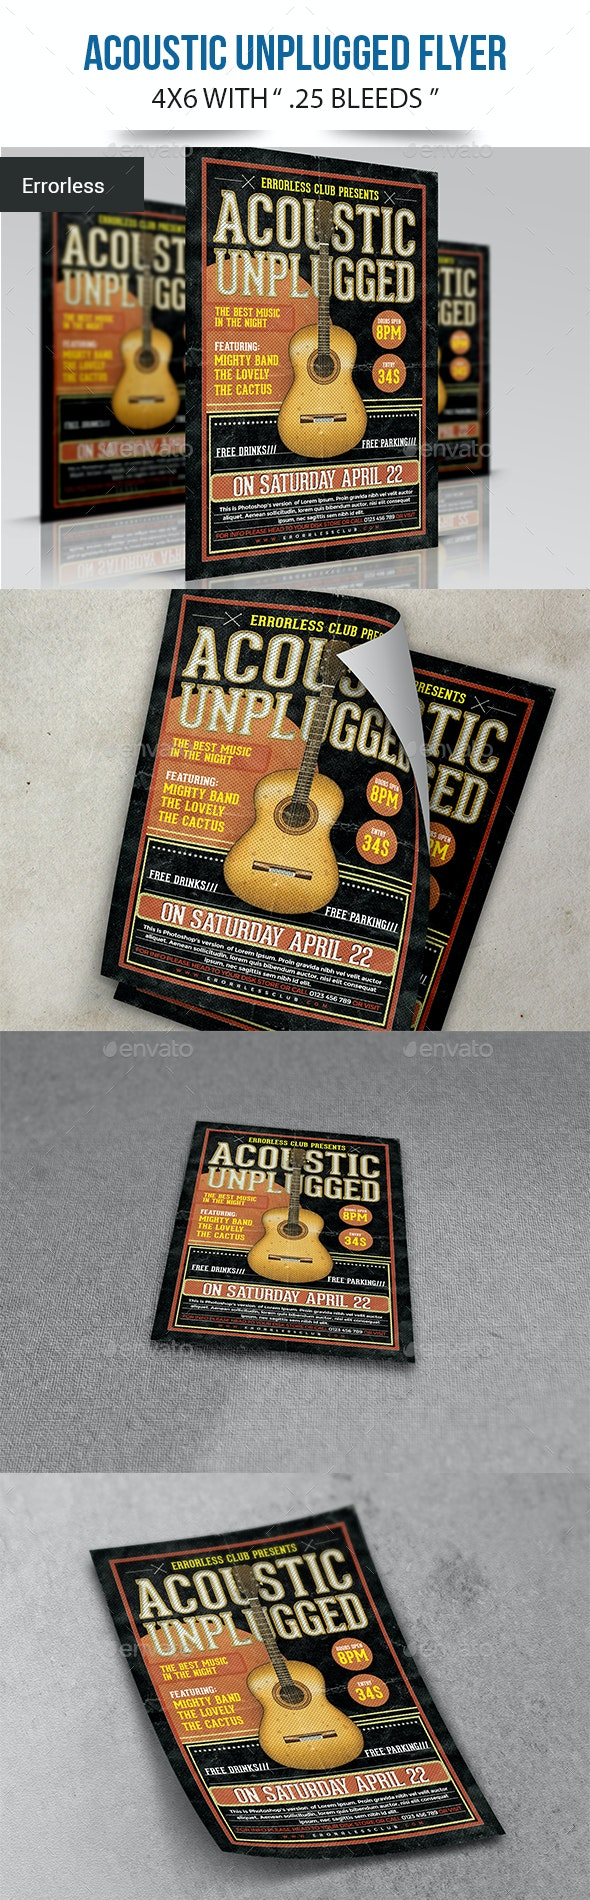 Acoustic Unplugged Flyer - Concerts Events